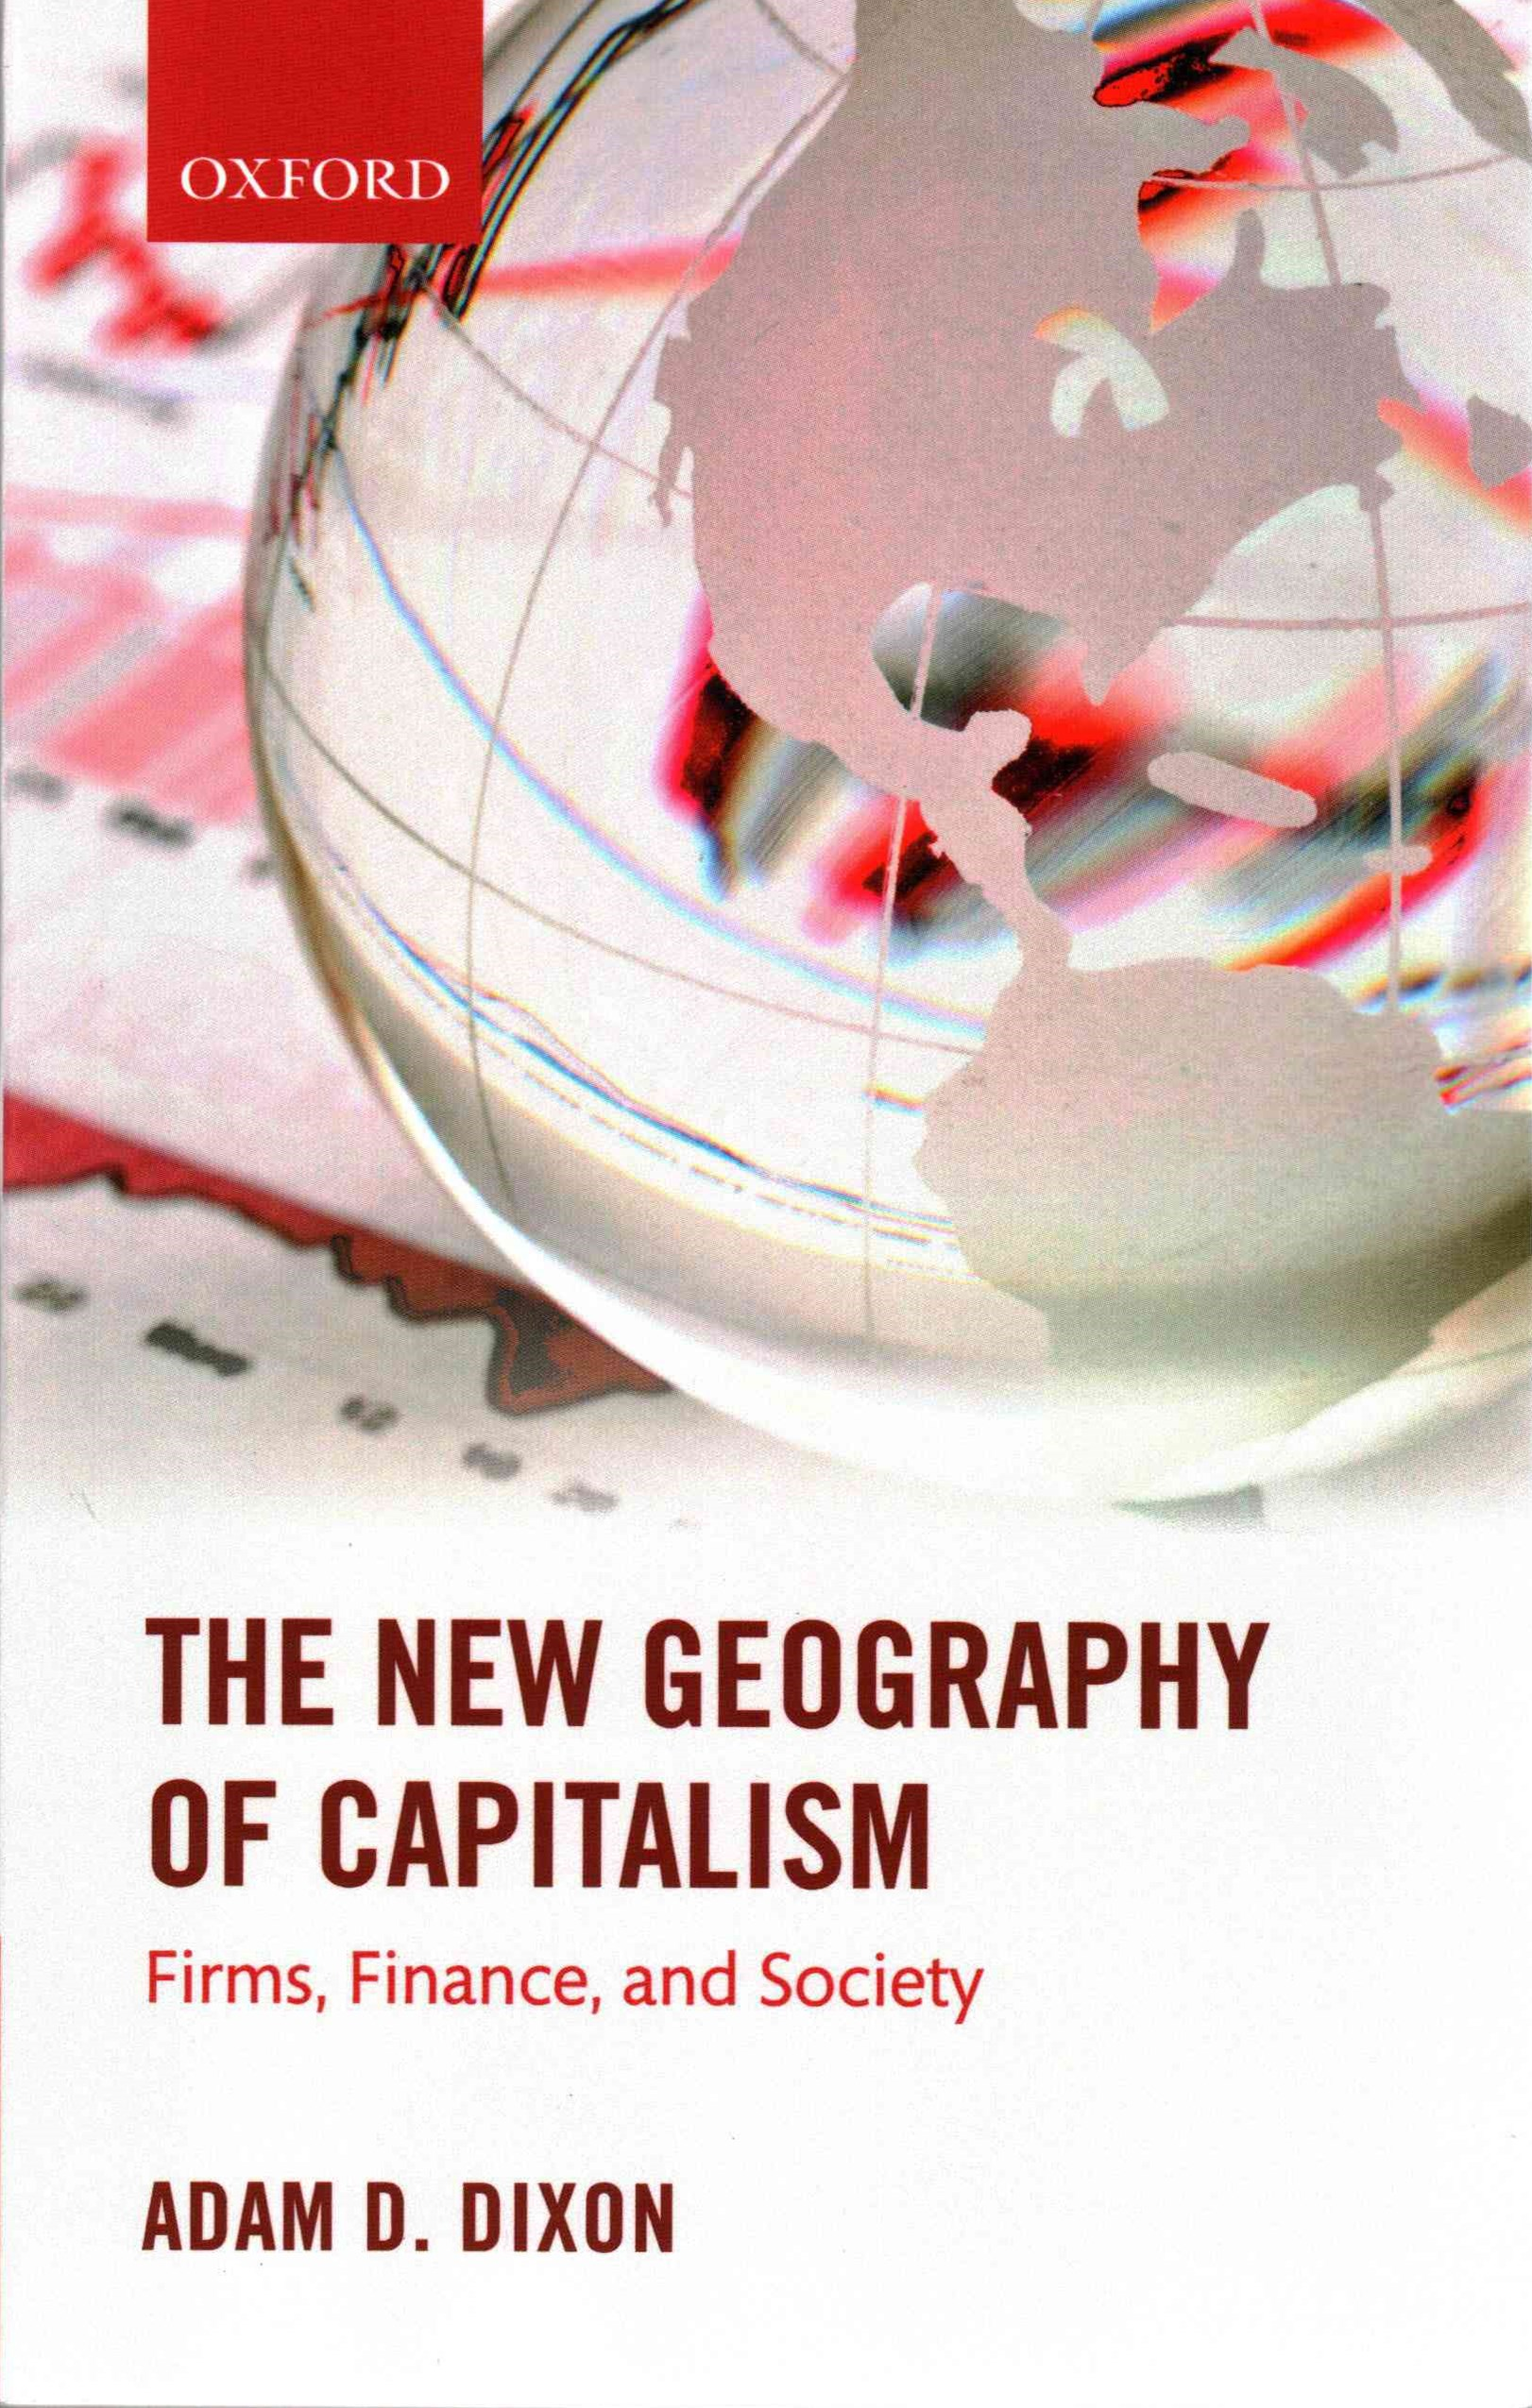 The New Geography of Capitalism